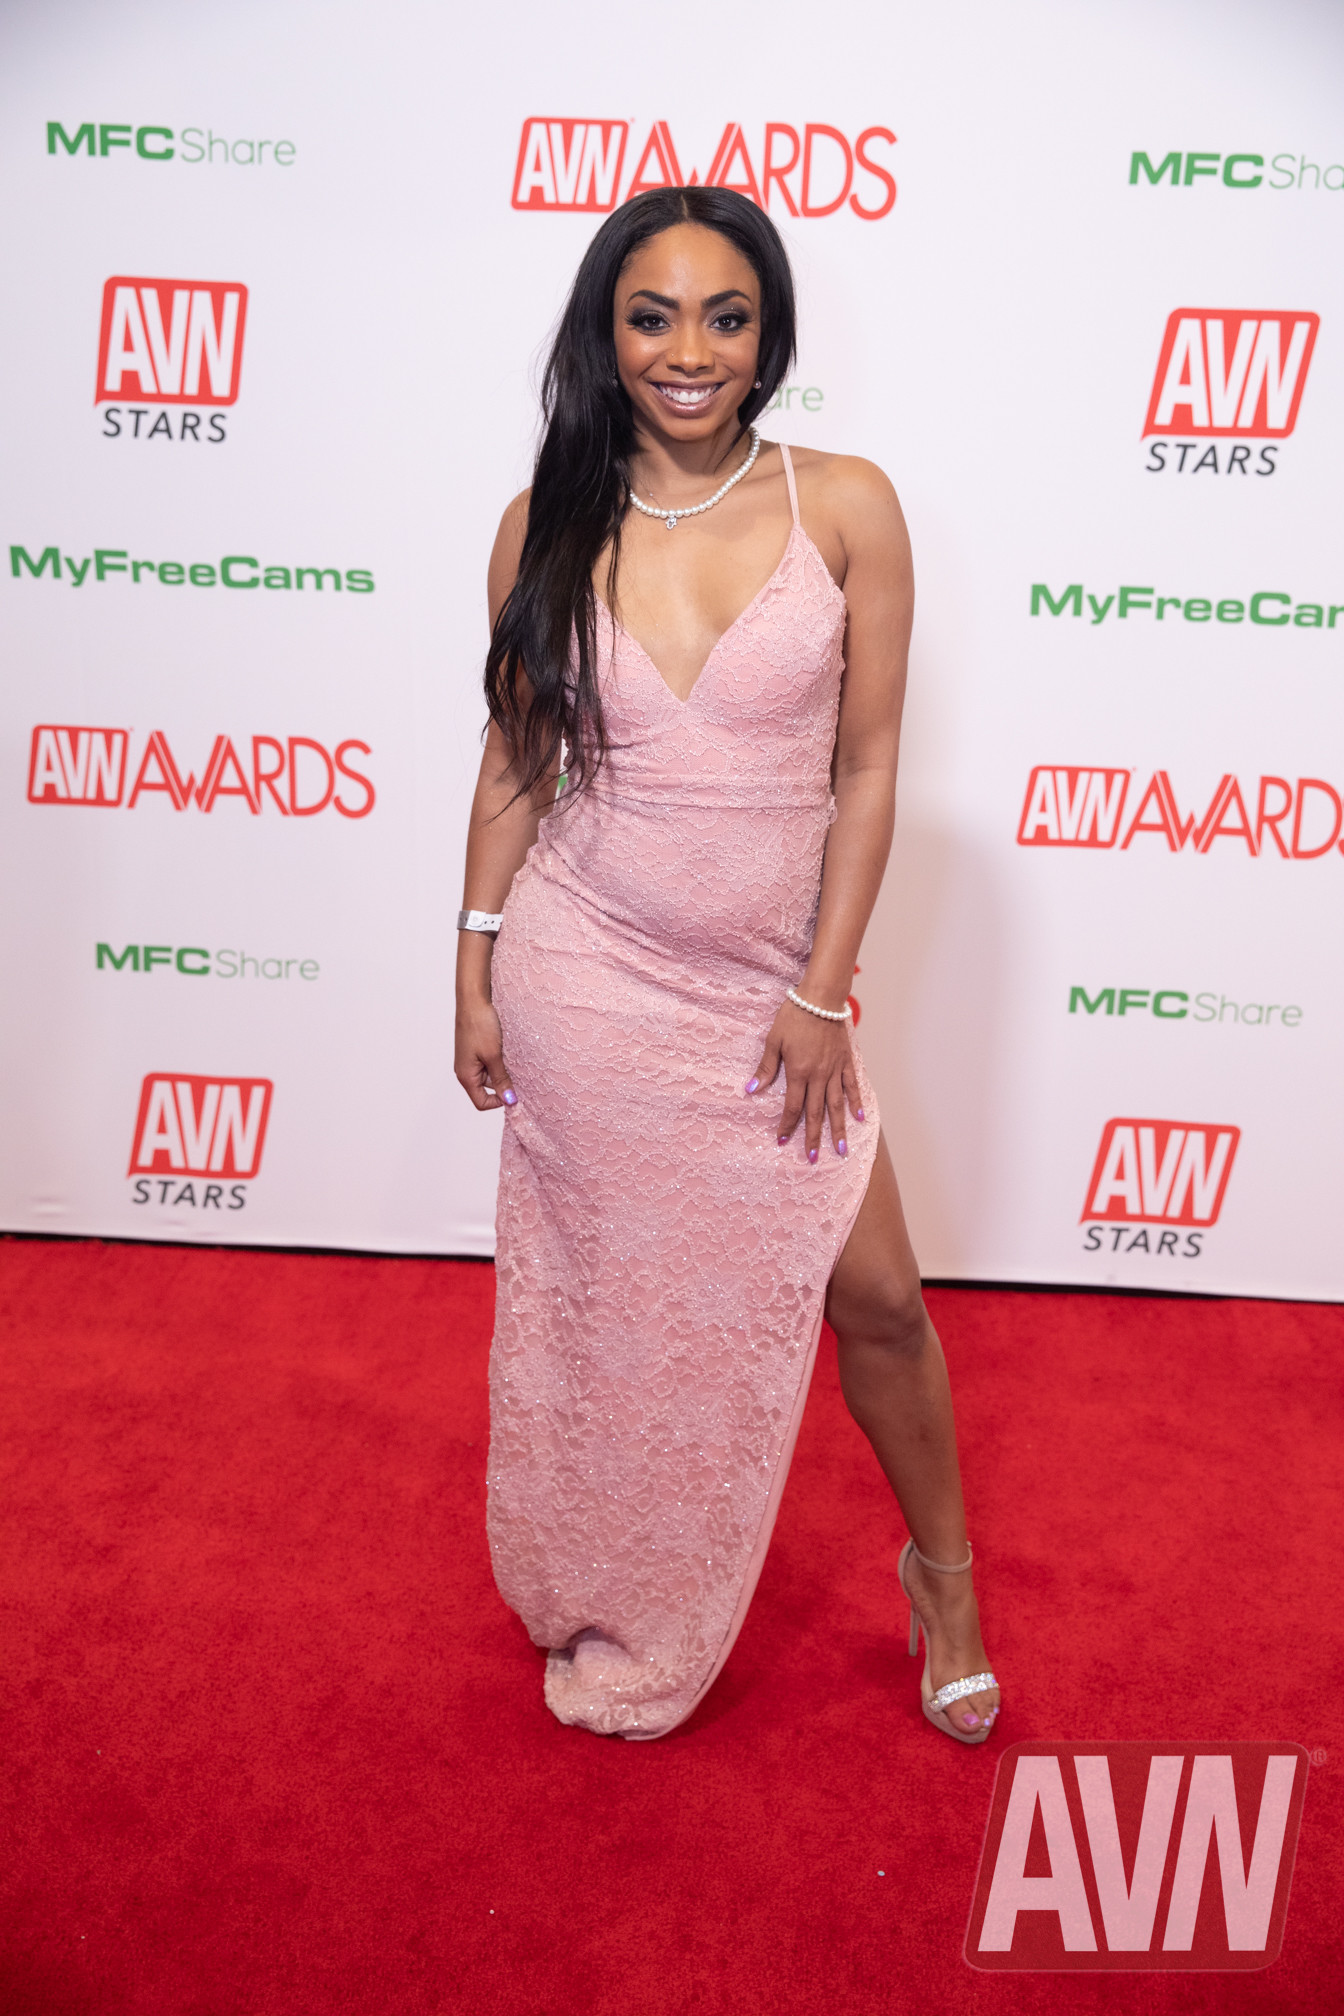 Avn 2020 awards